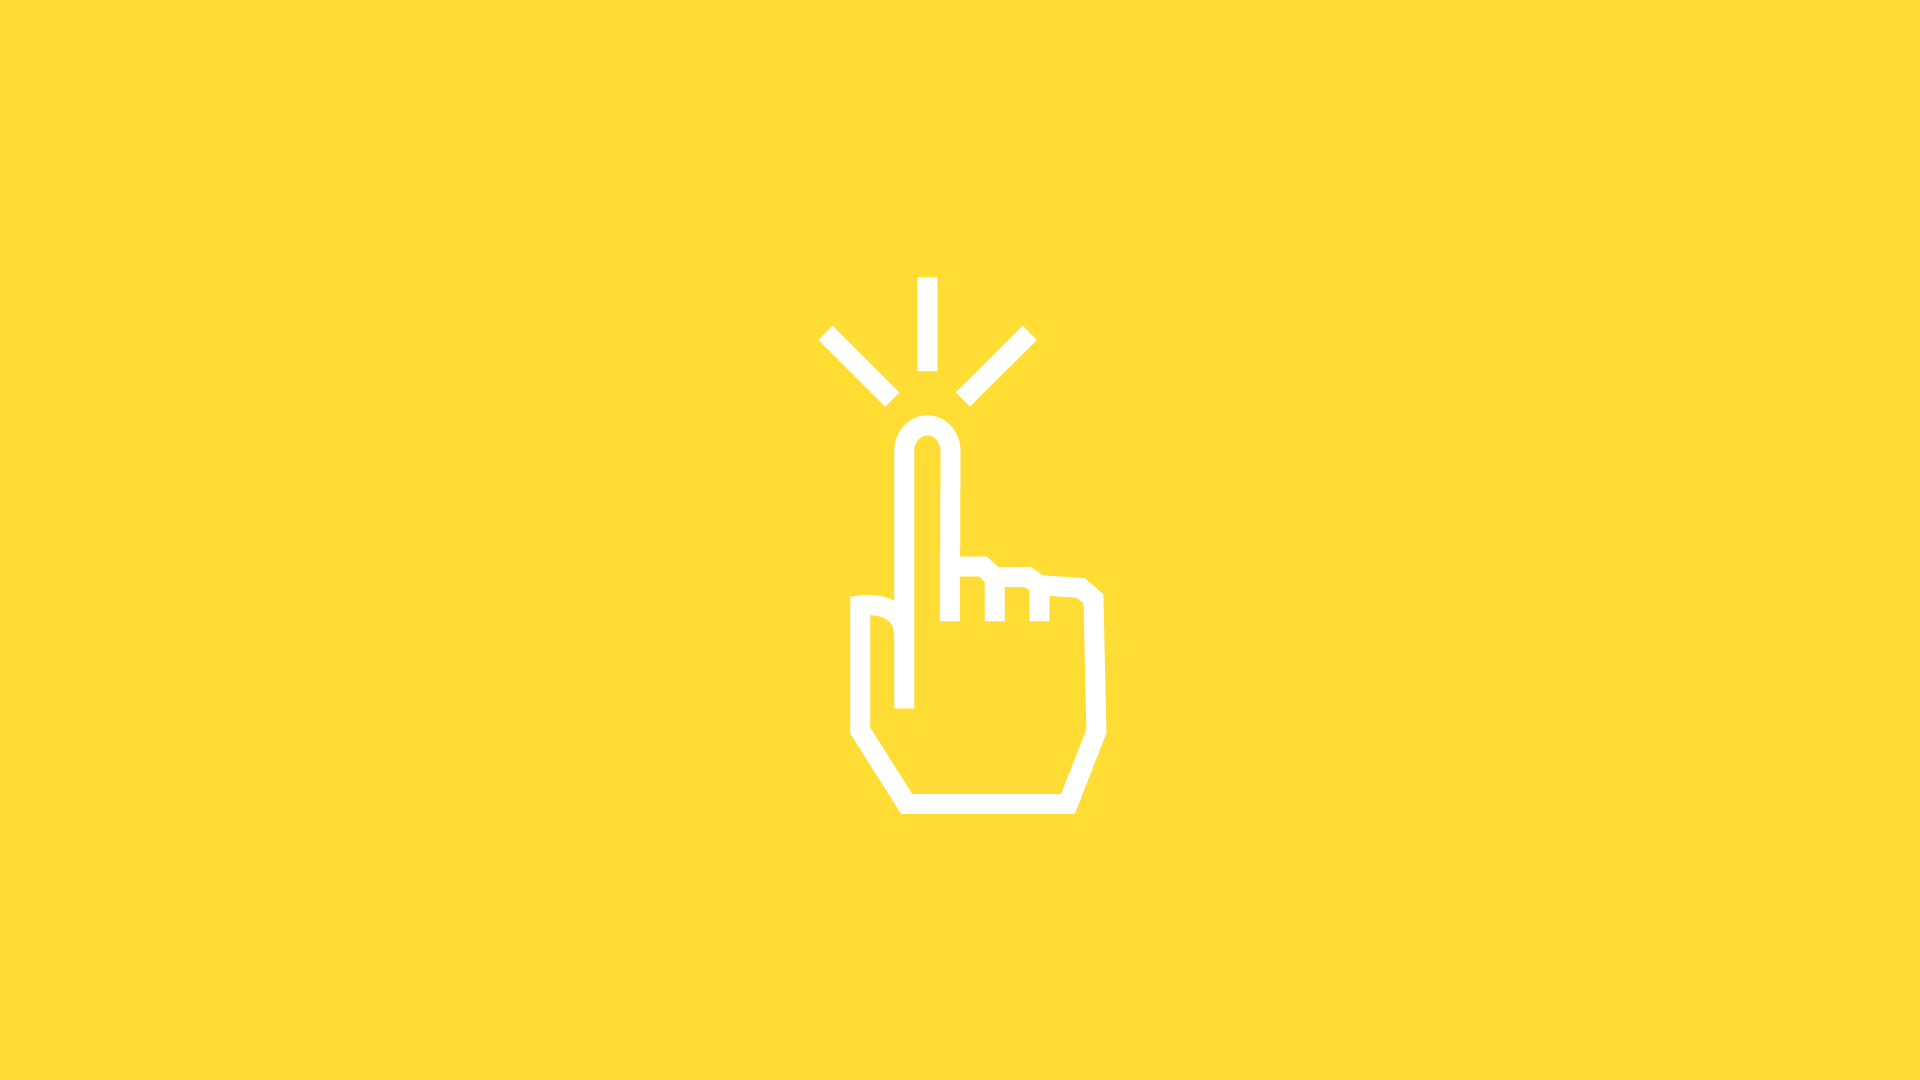 white hand icon on yellow background